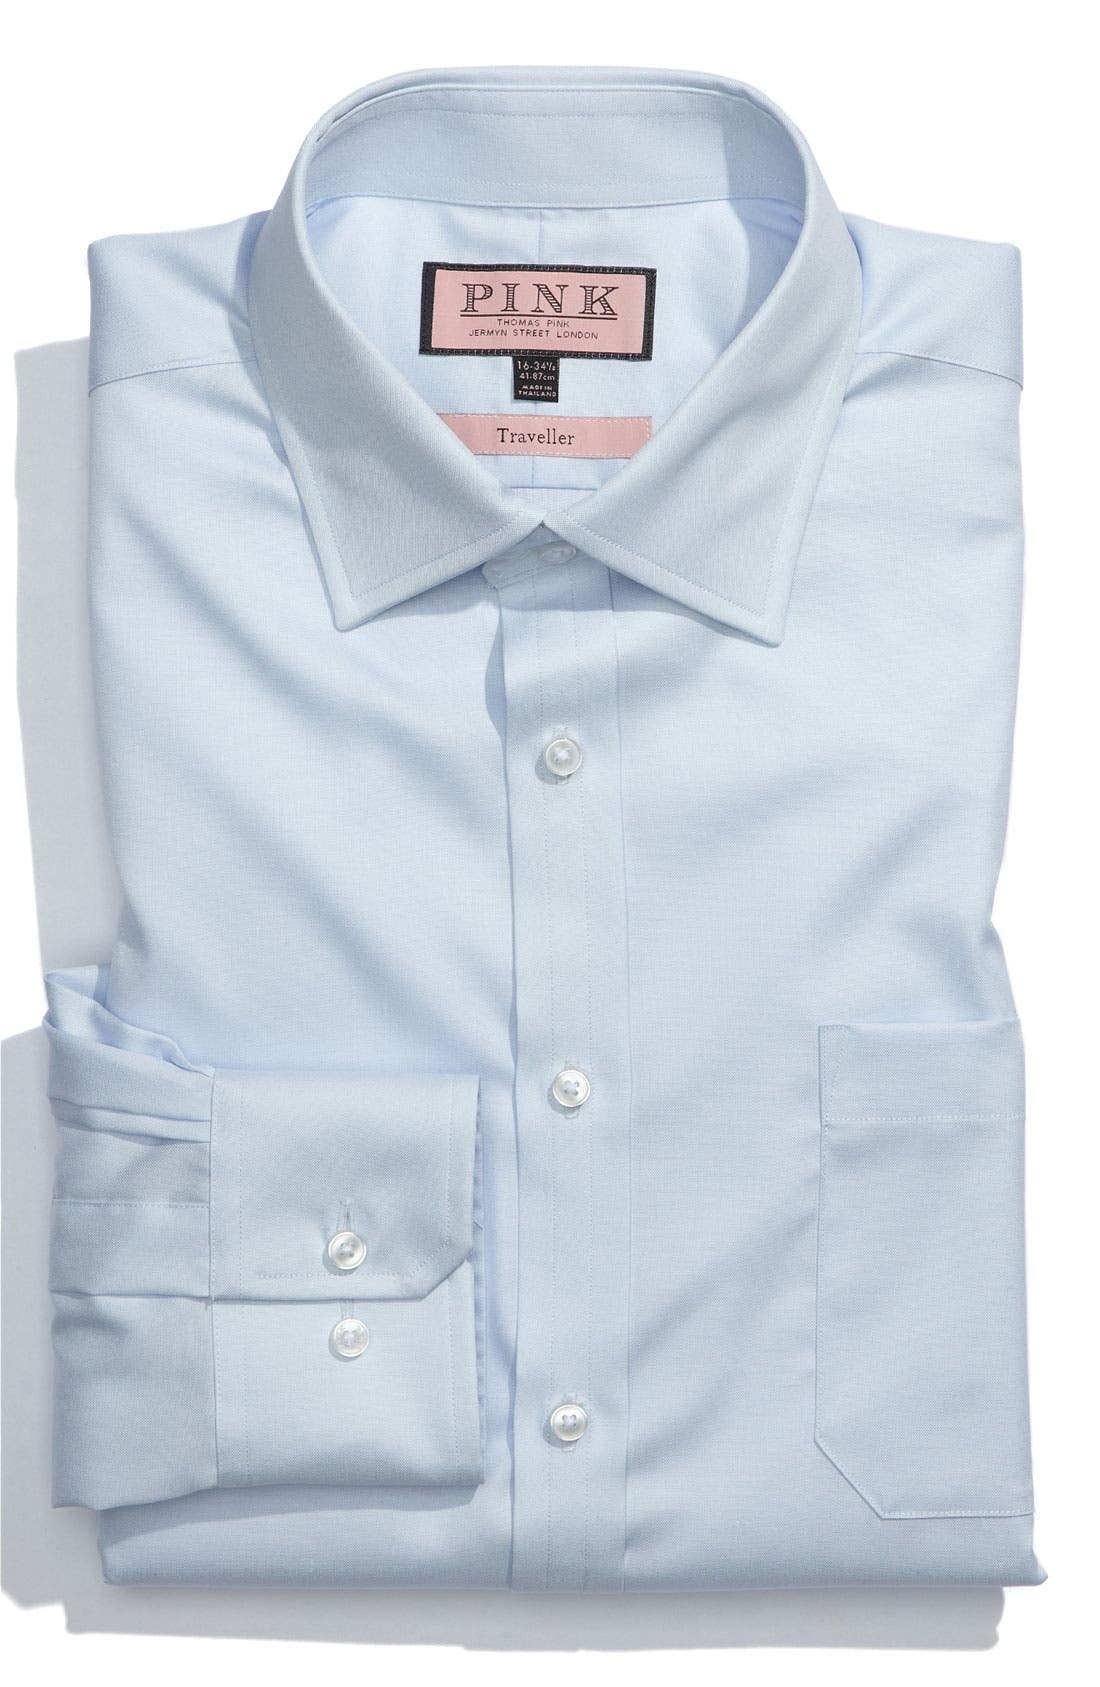 Alternate Image 1 Selected - Thomas Pink Classic Fit Traveller Dress Shirt